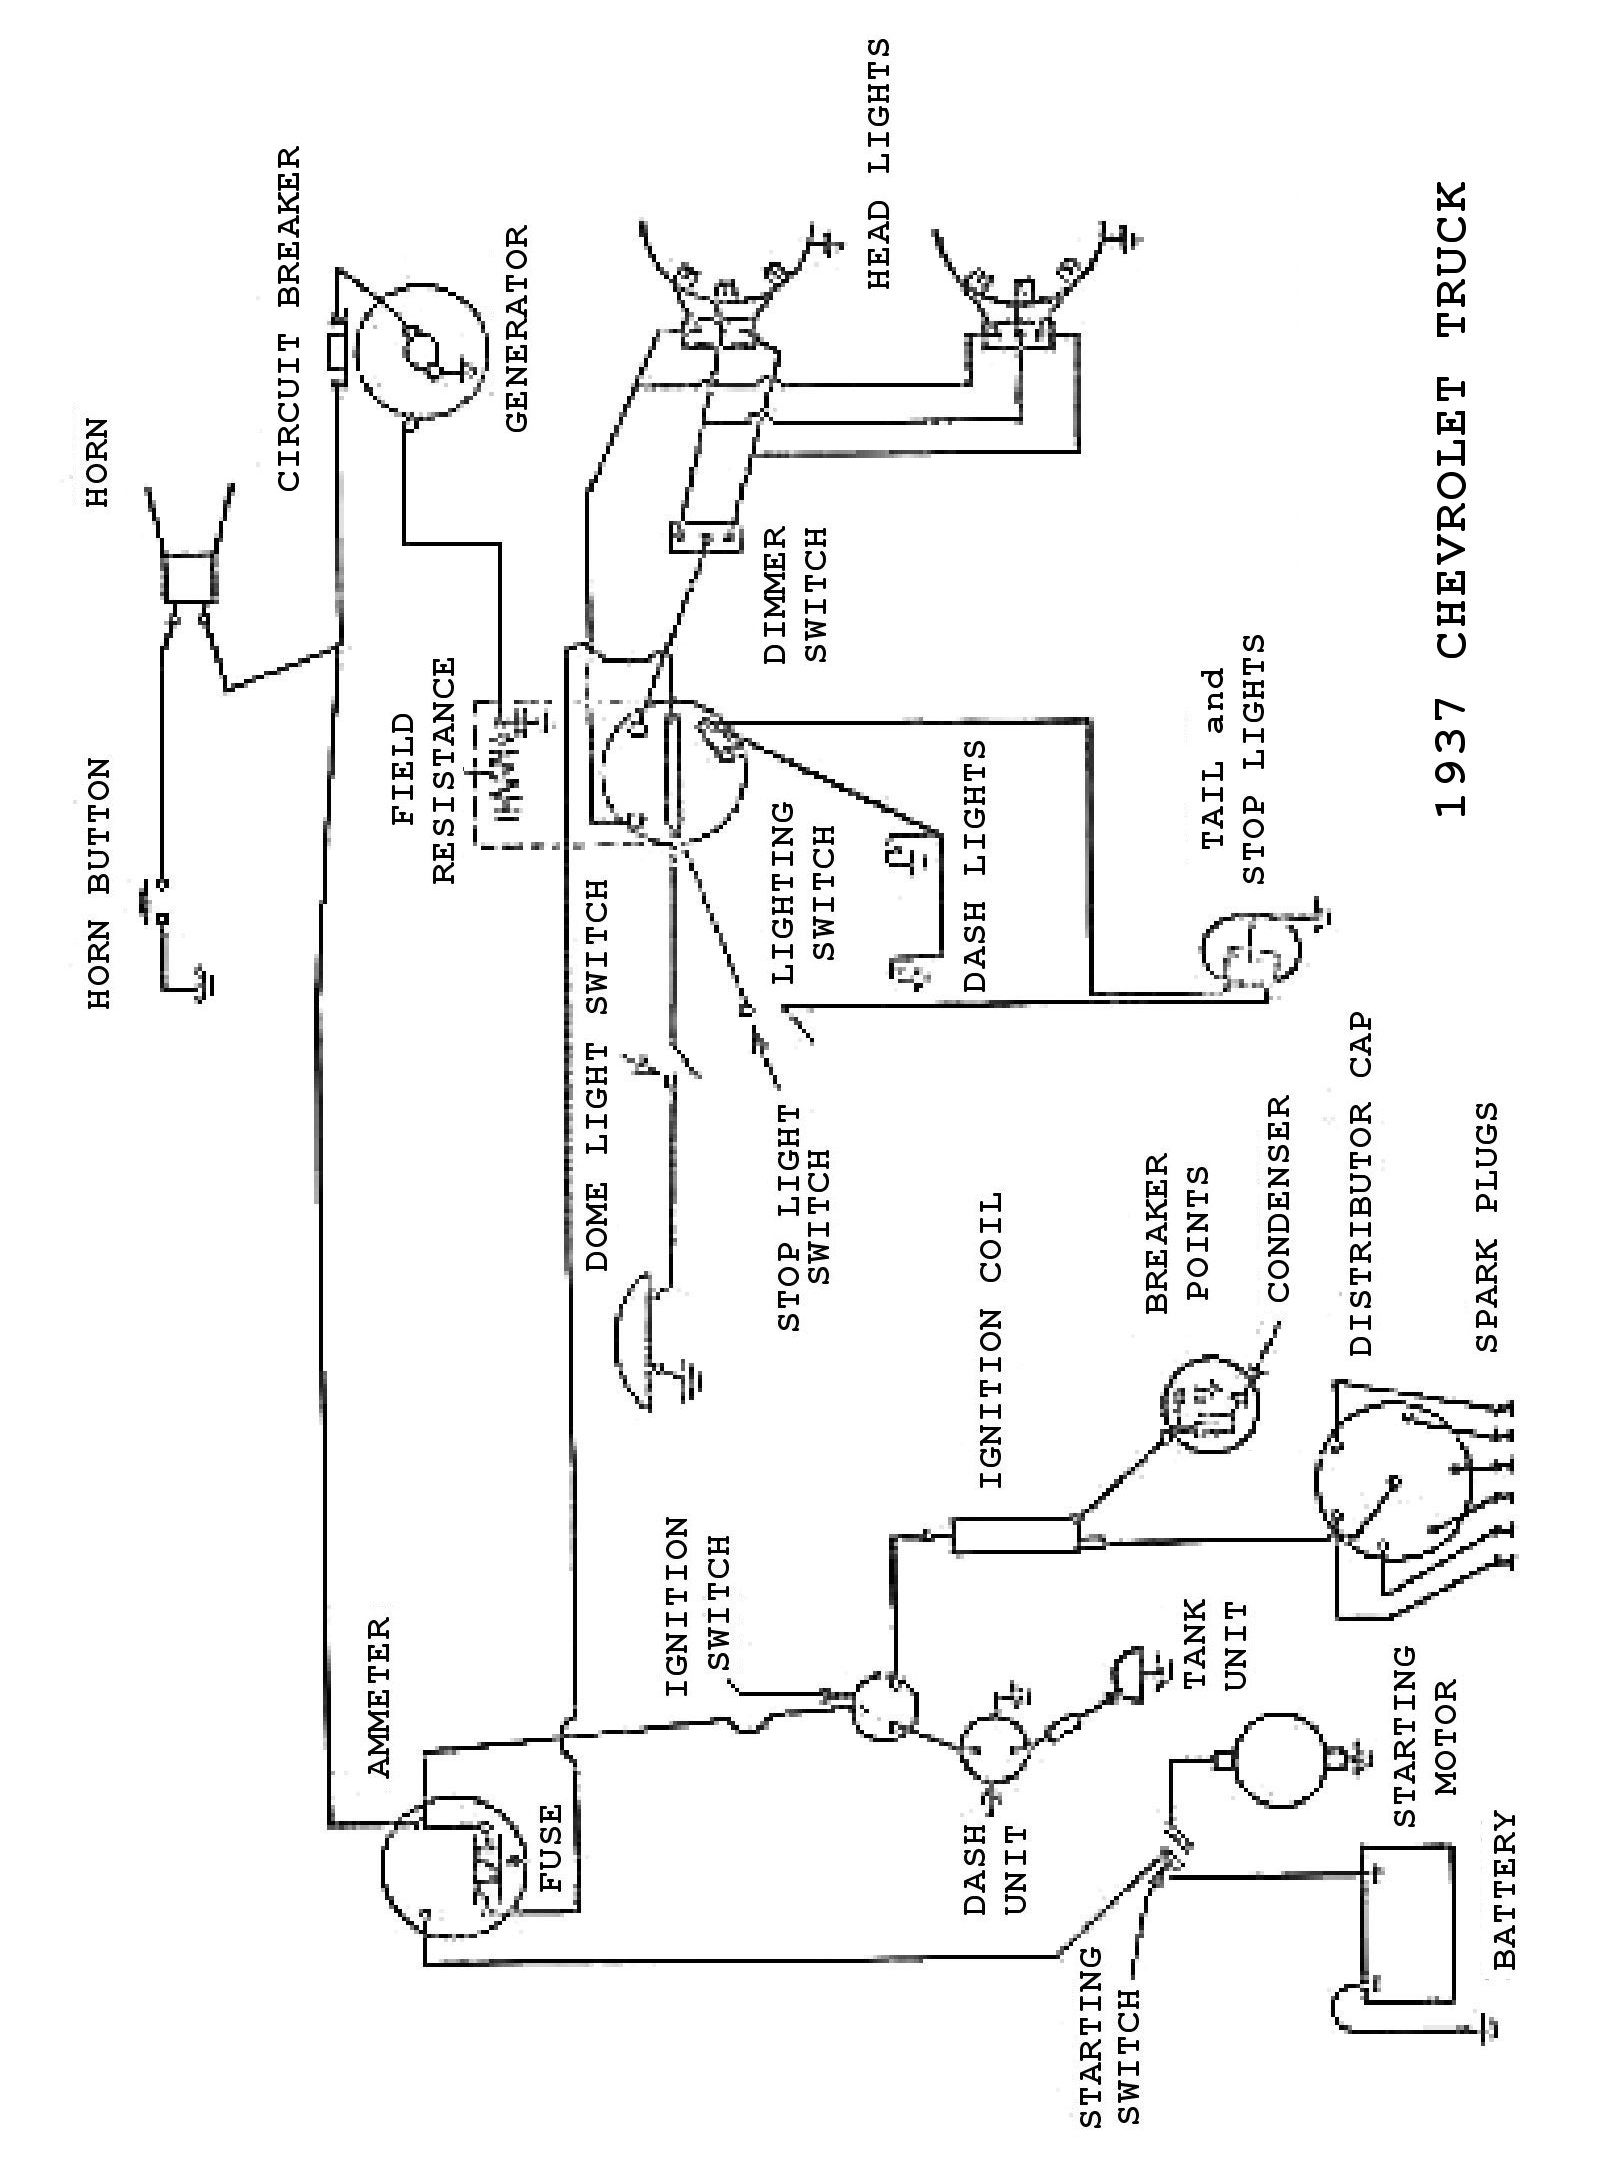 37truck wiring diagram for a 1937 chevy truck wiring diagram simonand 66 Chevy Headlight Switch Wiring Diagram at bakdesigns.co